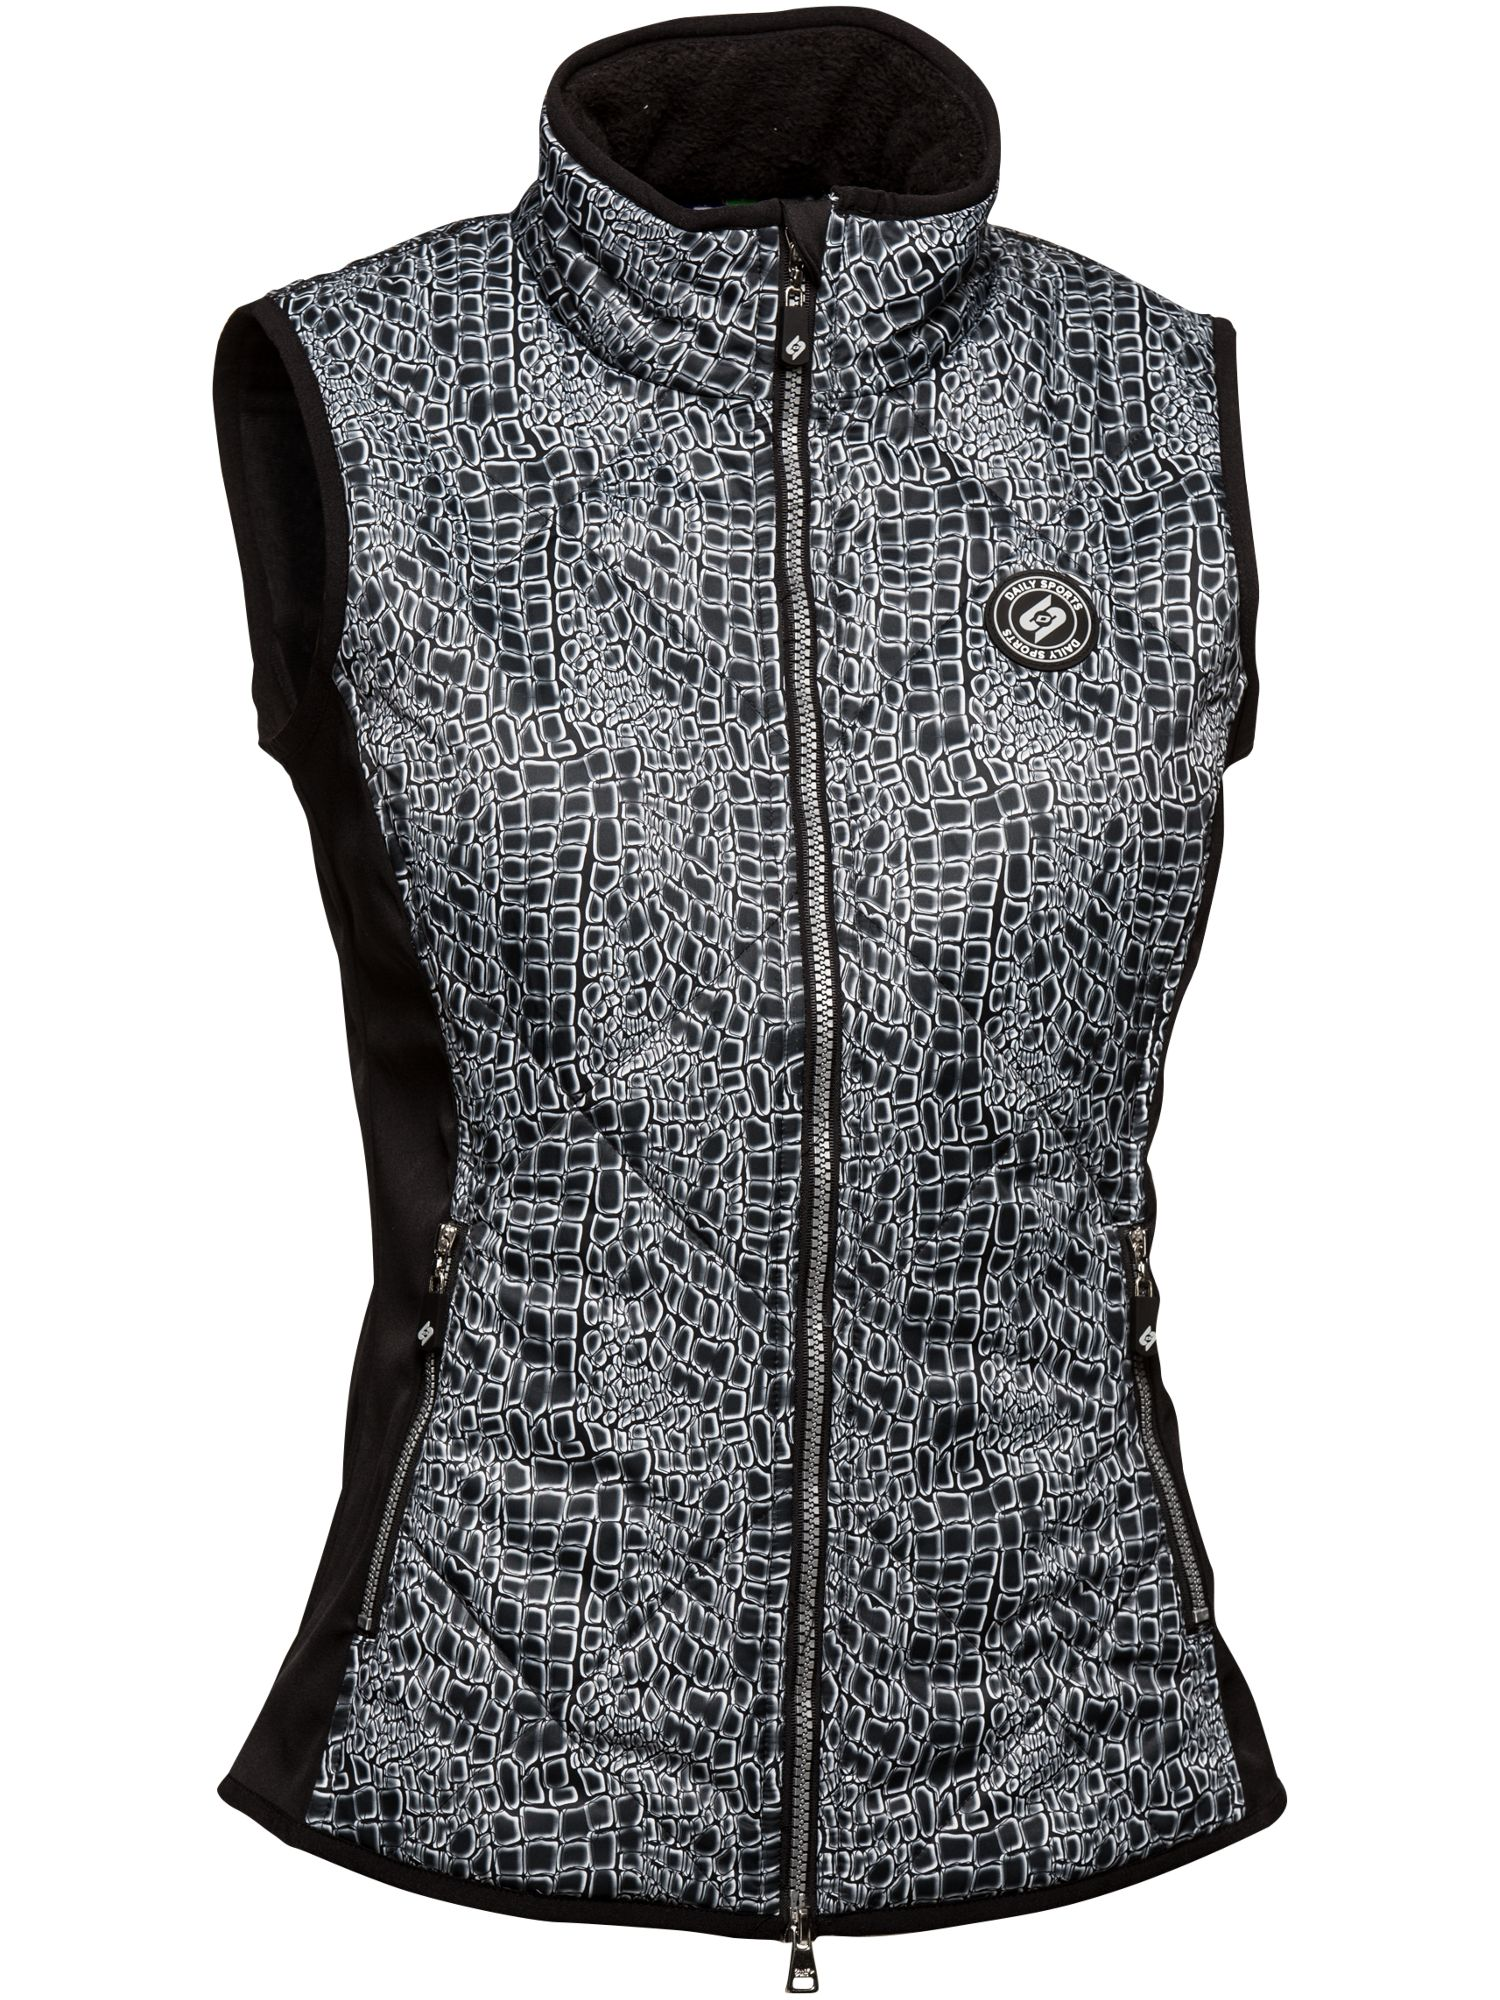 Daily Sports Daily Sports Laura wind vest, Black